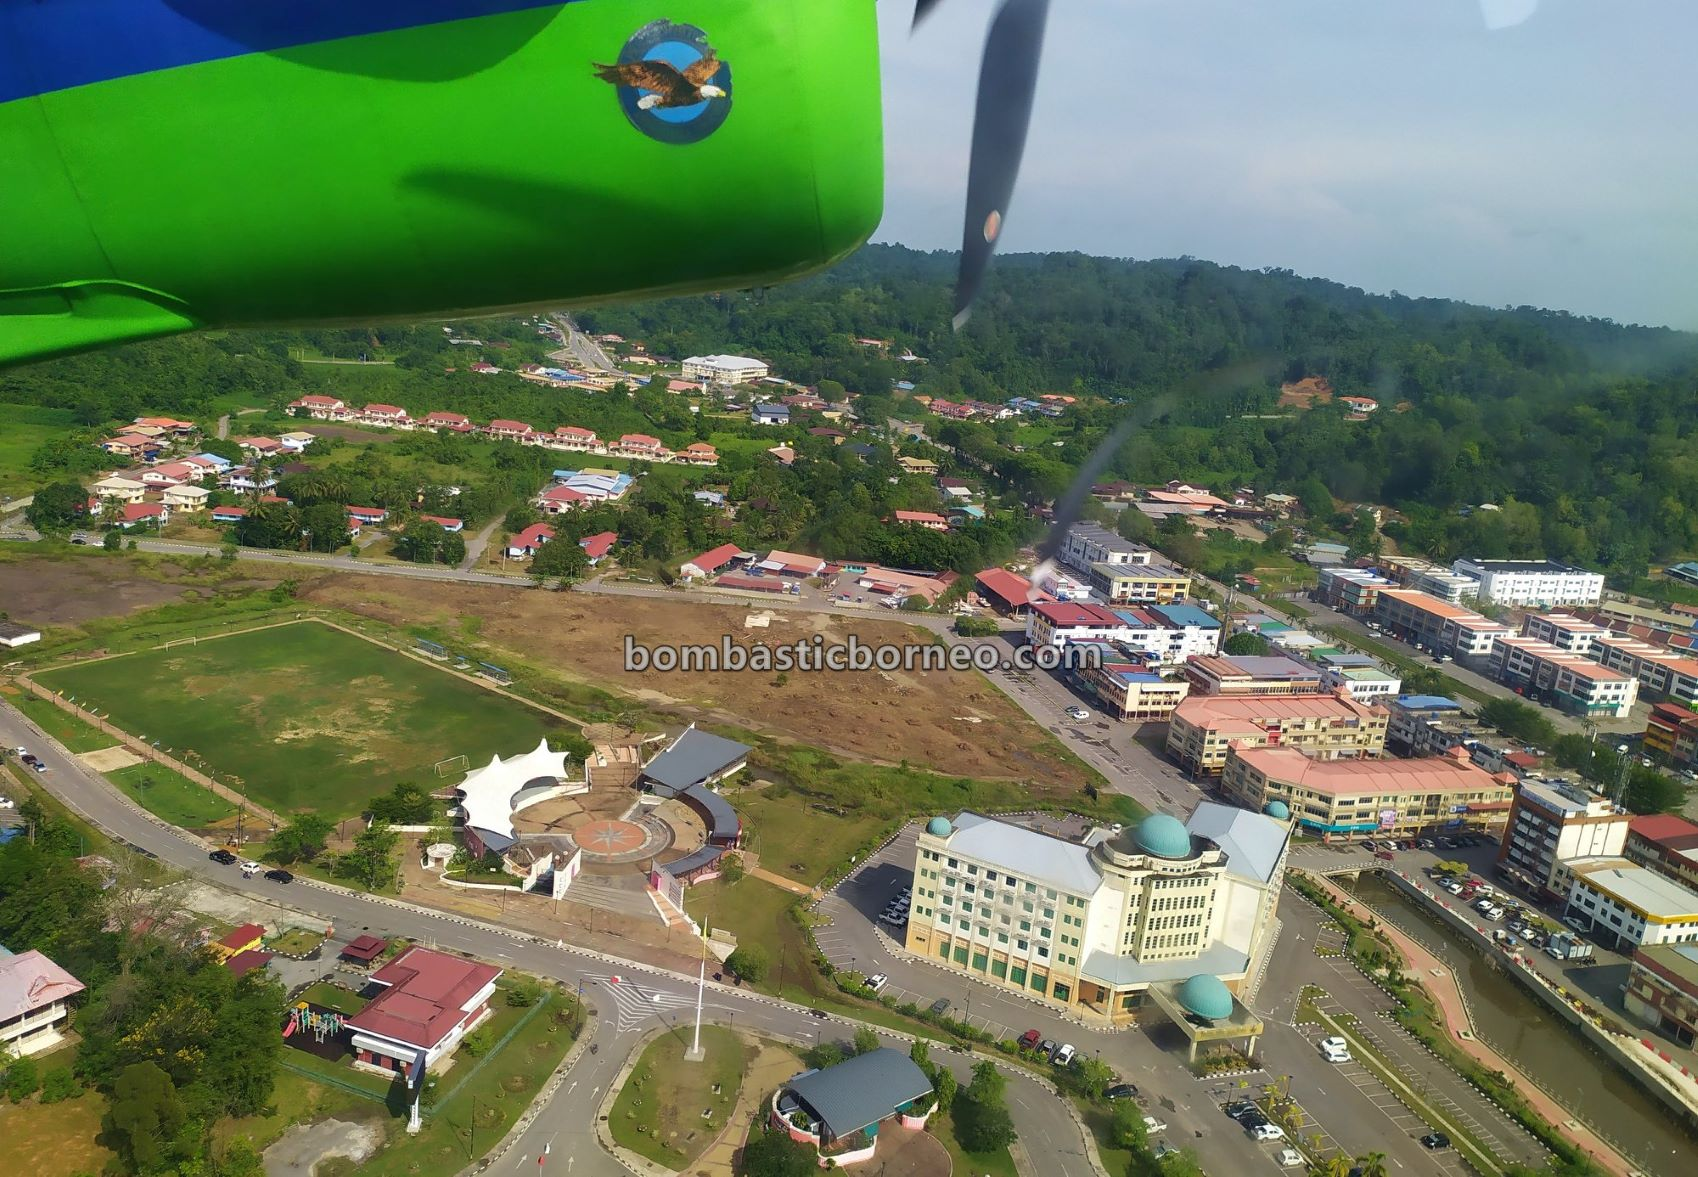 Mas Wings, twin otter, Ba'kelalan, backpackers, destination, exploration, Interior, village, Limbang, Lun Bawang, native, Tourism, Trans Borneo, 探索婆罗洲游踪, 马来西亚砂拉越老越,